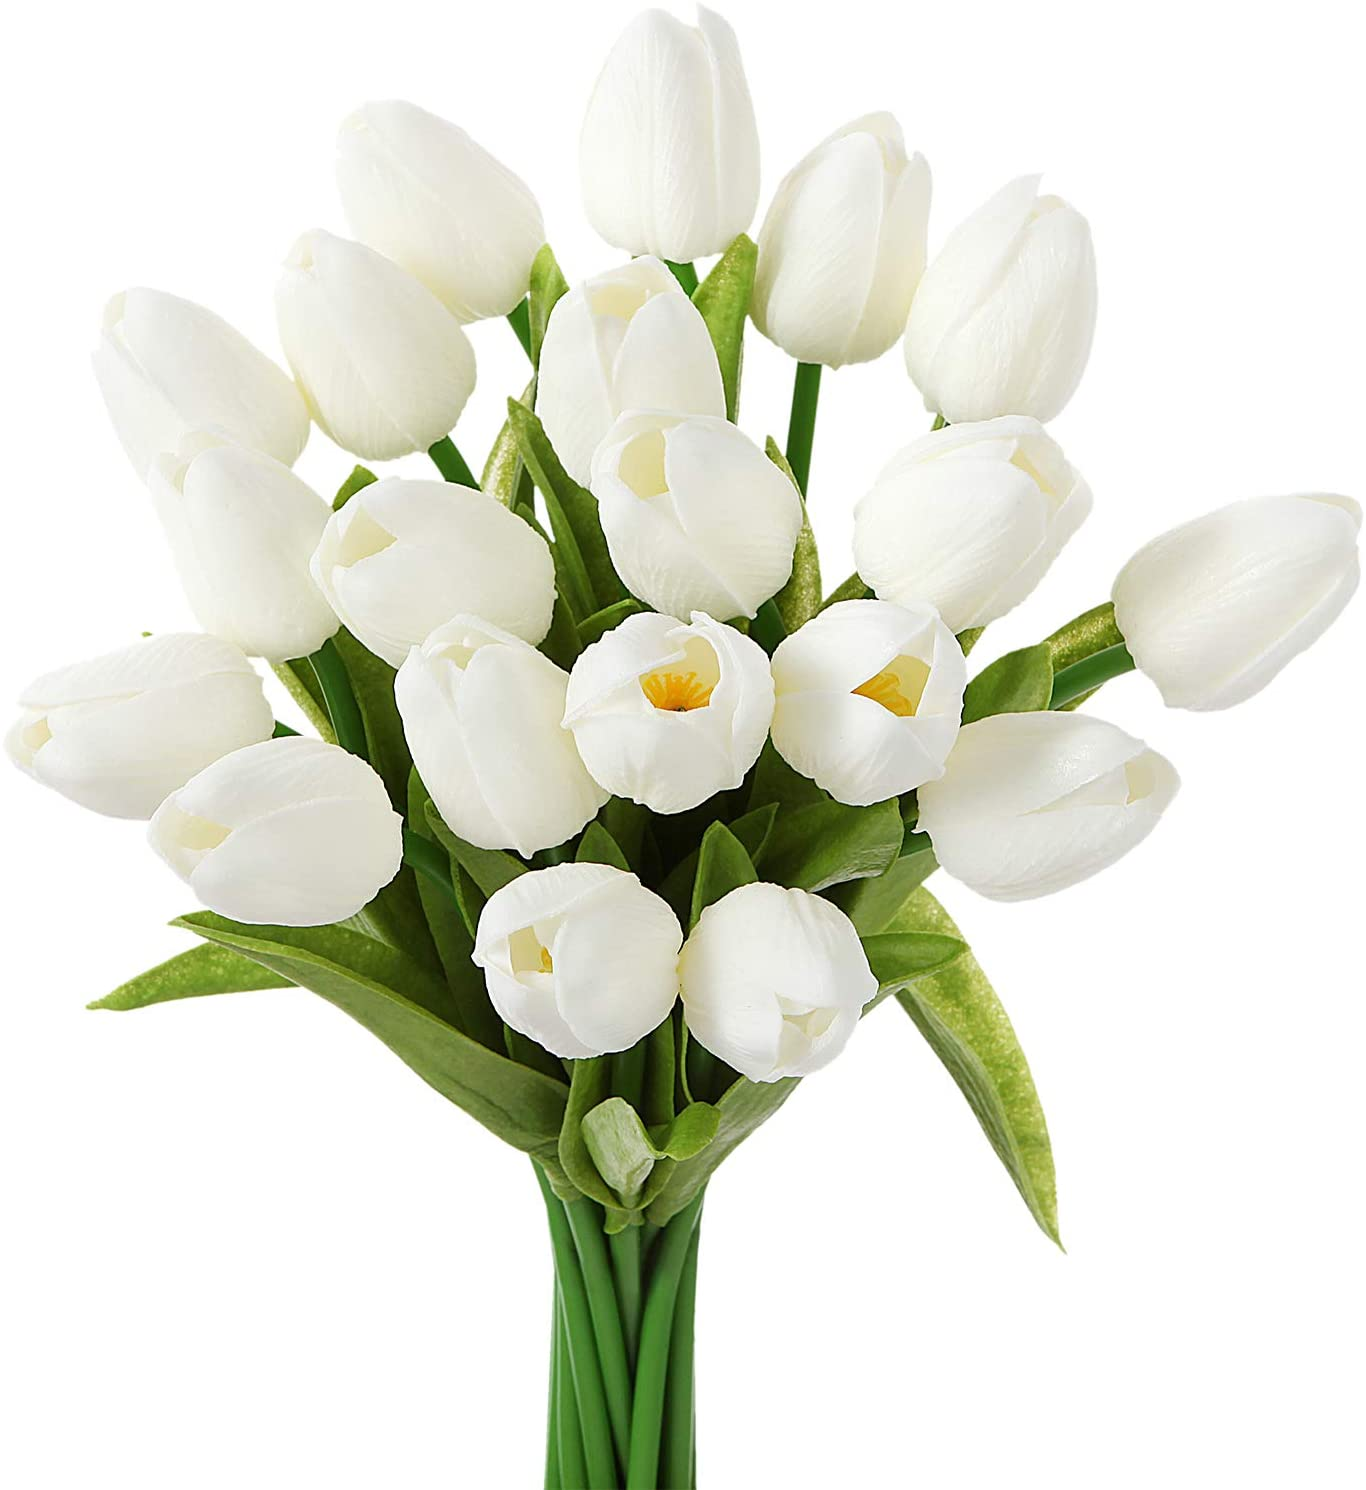 EZFLOWERY 10 Heads Artificial Tulips Flowers Real Touch Arrangement Bouquet for Home Room Office Party Wedding Decoration, Excellent Gift Idea for Mothers Day (10, White)